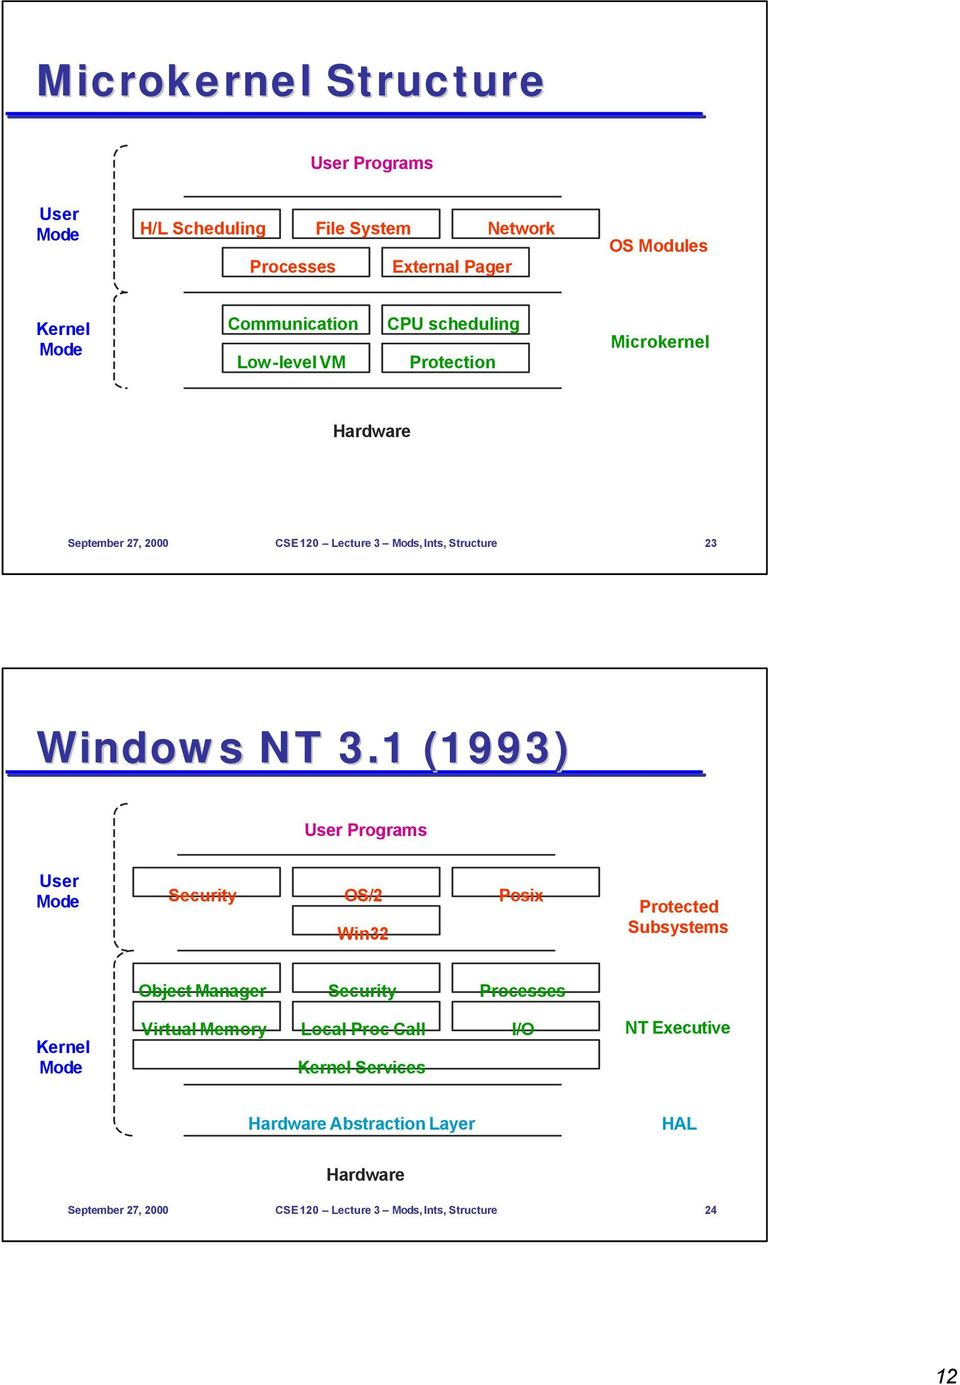 1 (1993) User Programs User Mode Security OS/2 Win32 Posix Protected Subsystems Object Manager Security Processes Kernel Mode Virtual Memory